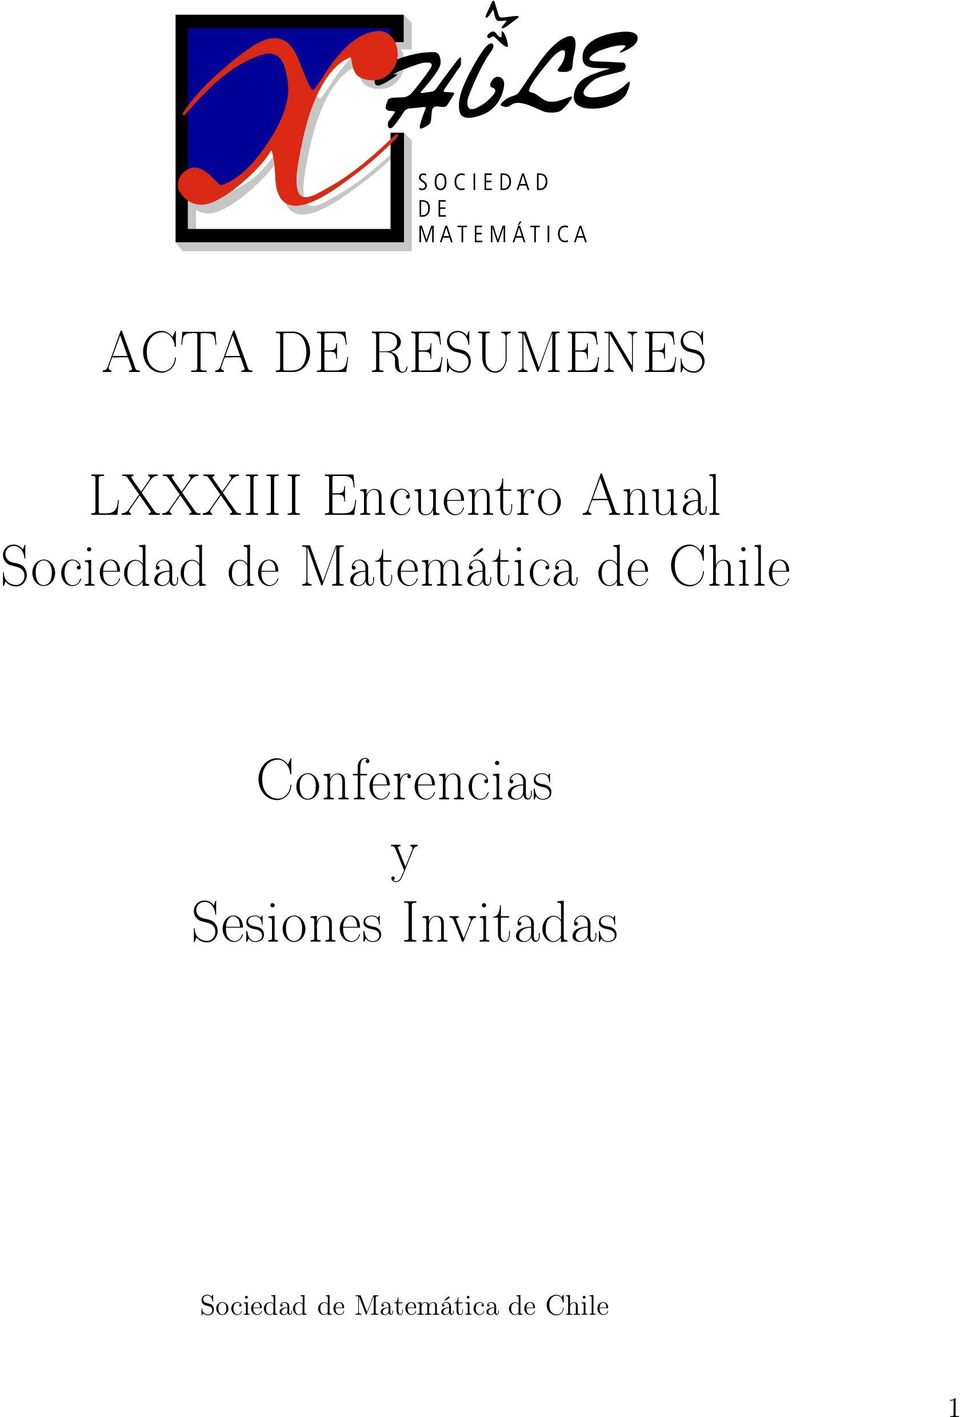 Chile Conferencias y Sesiones